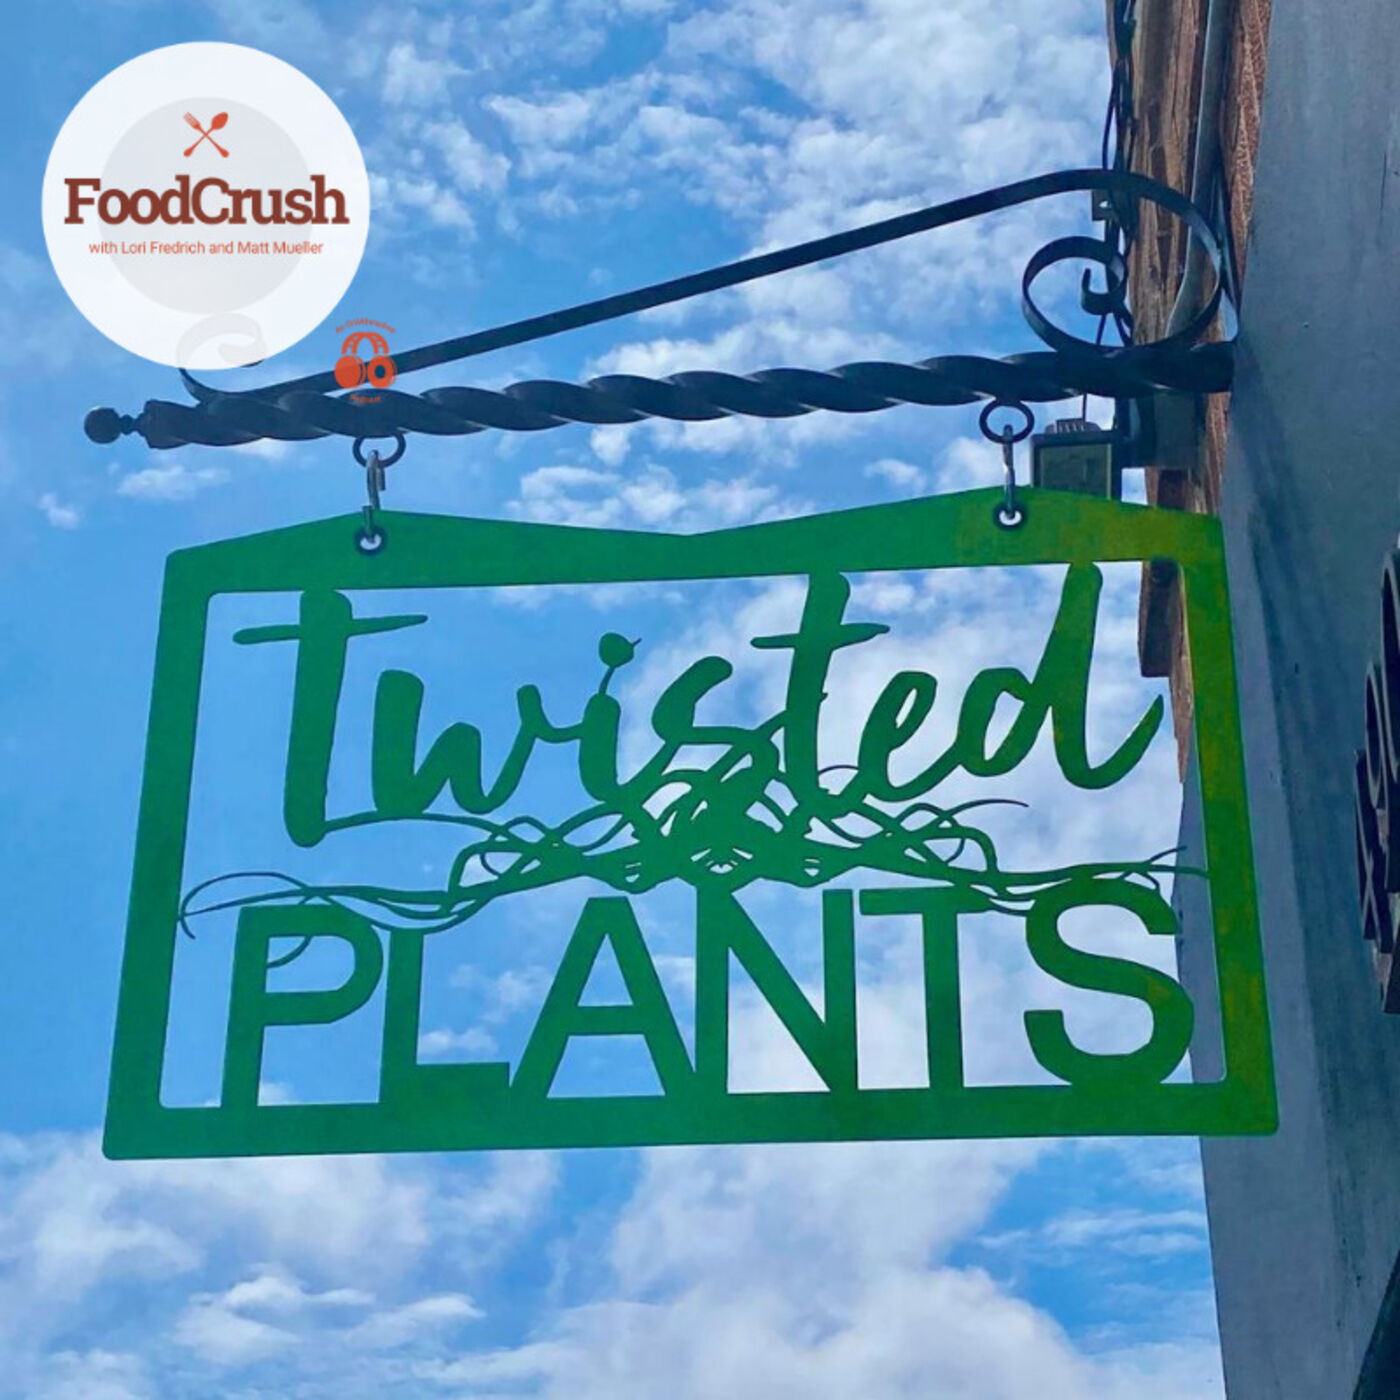 Vegan comfort food spells success for Twisted Plants